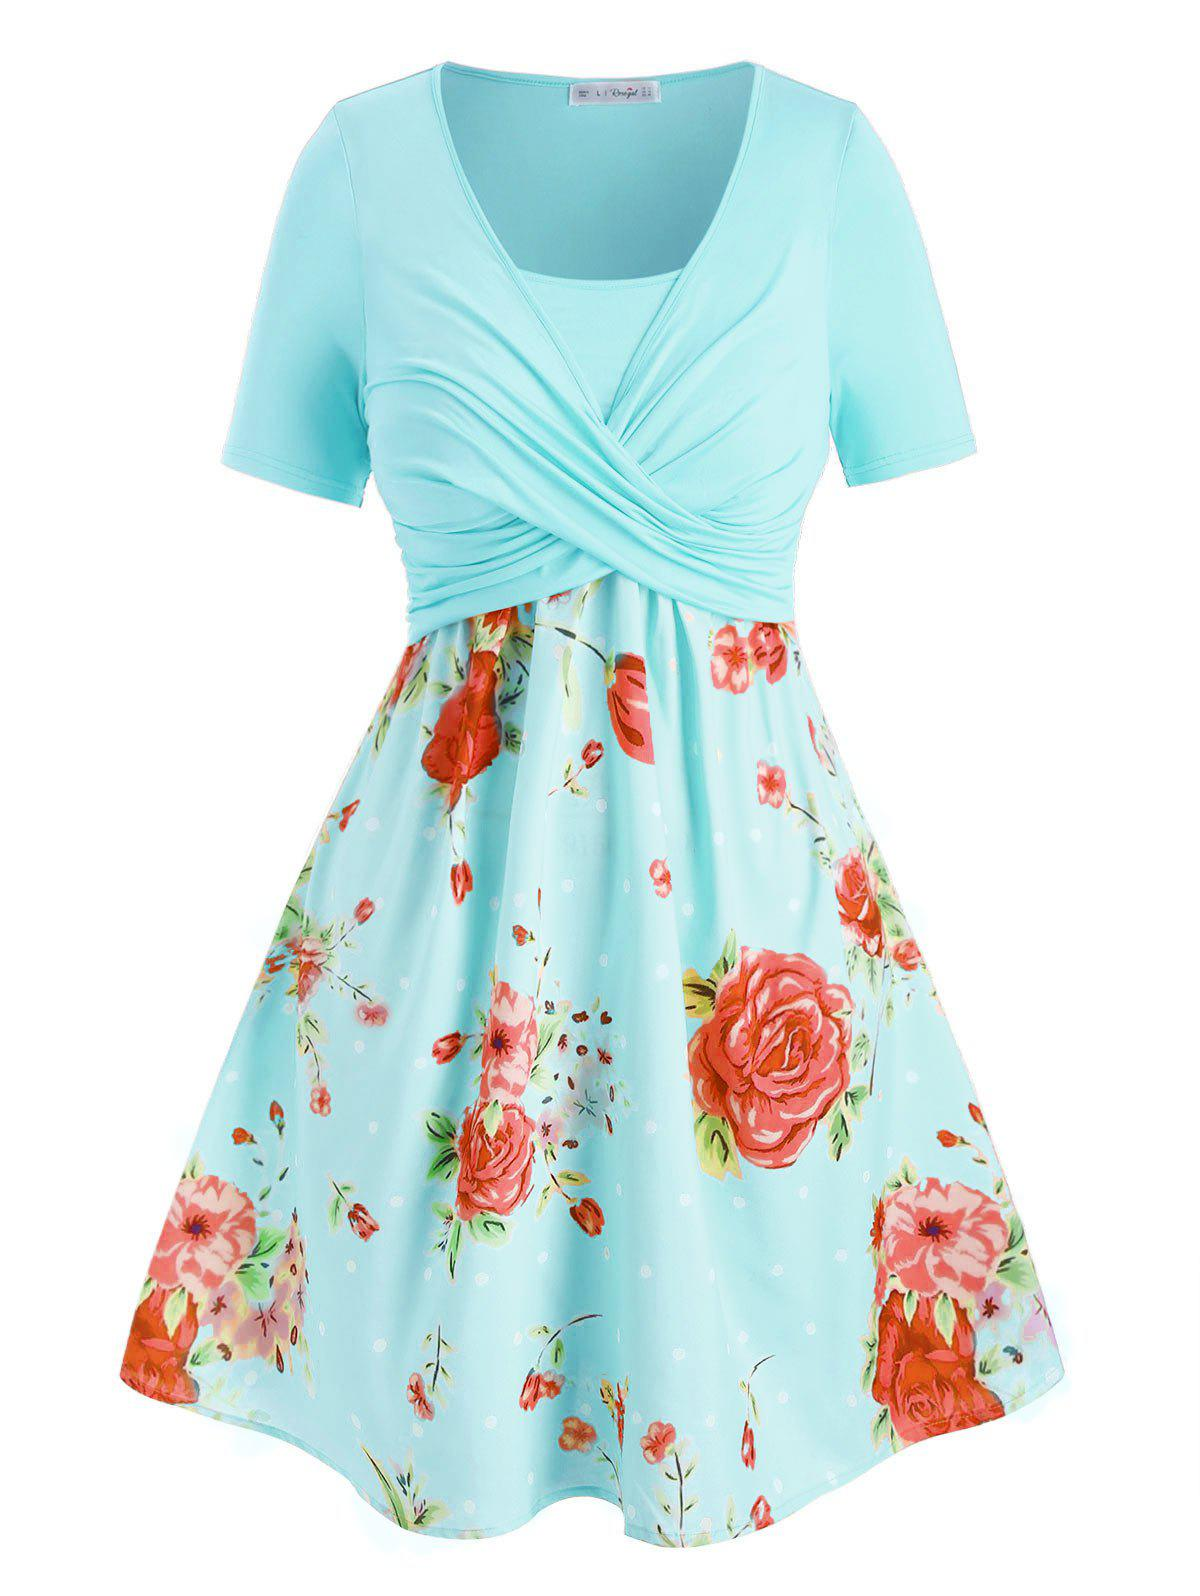 Plus Size Crossover Floral Print Dress - ROBIN EGG BLUE 2X